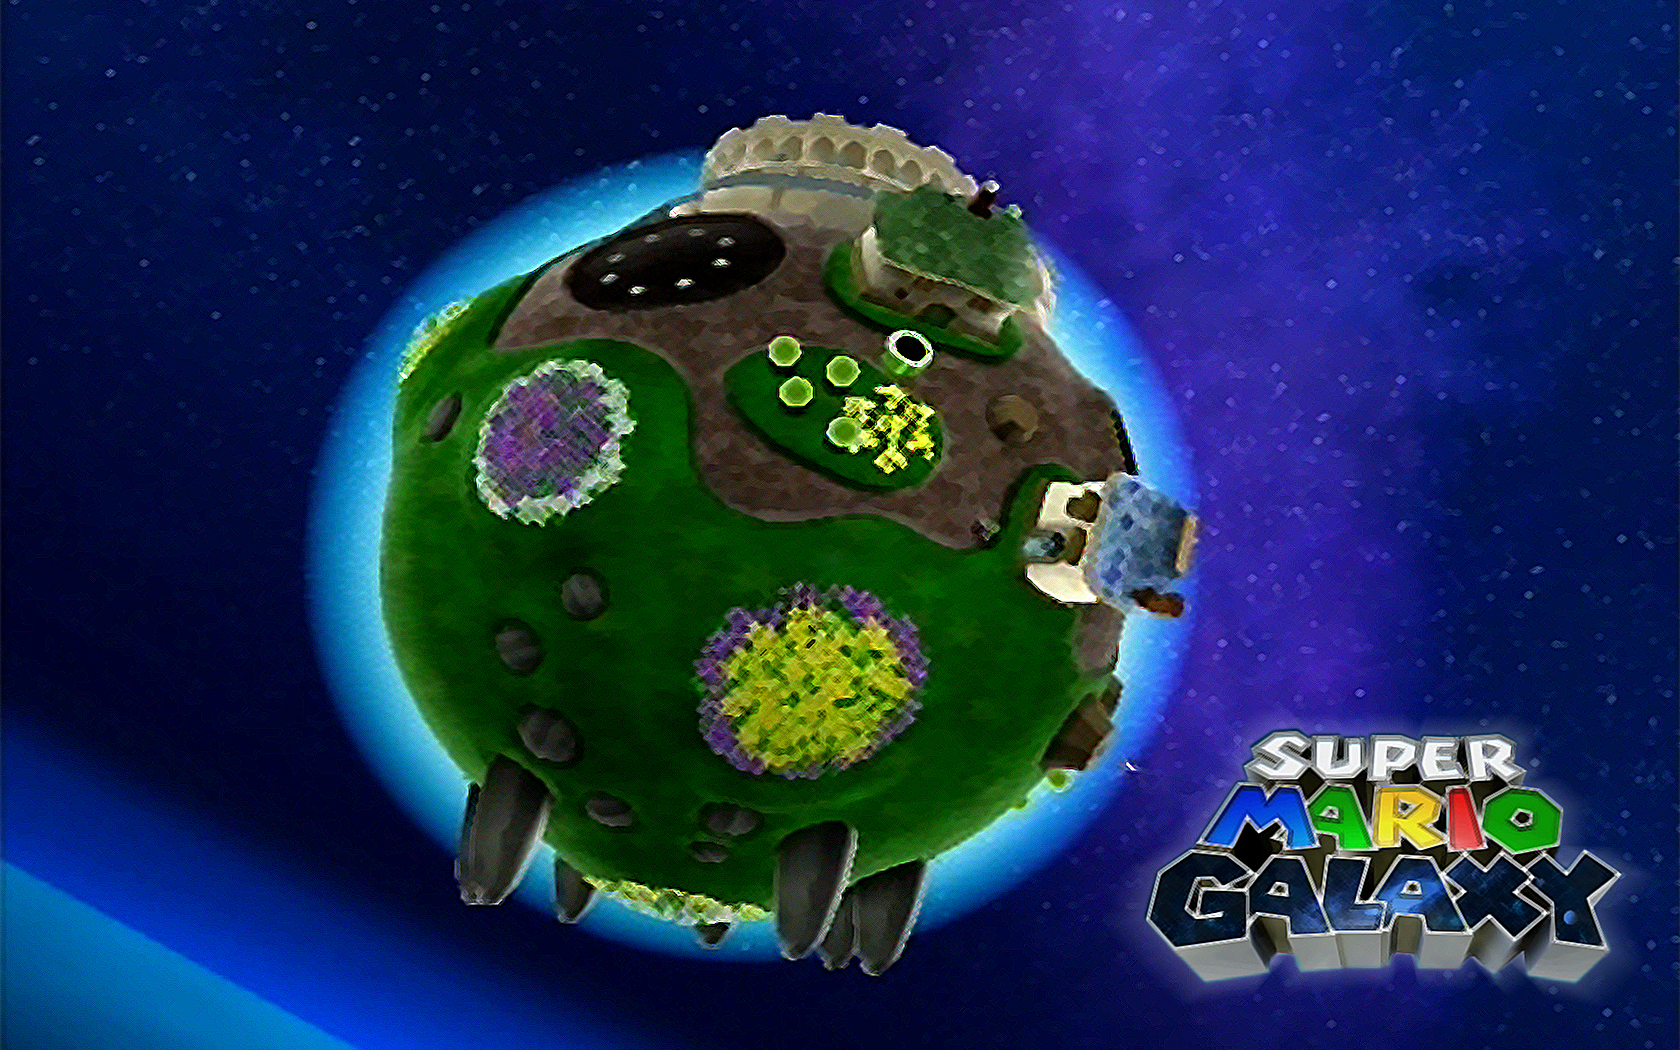 Super Mario Galaxy Wallpaper by OneginIII on DeviantArt